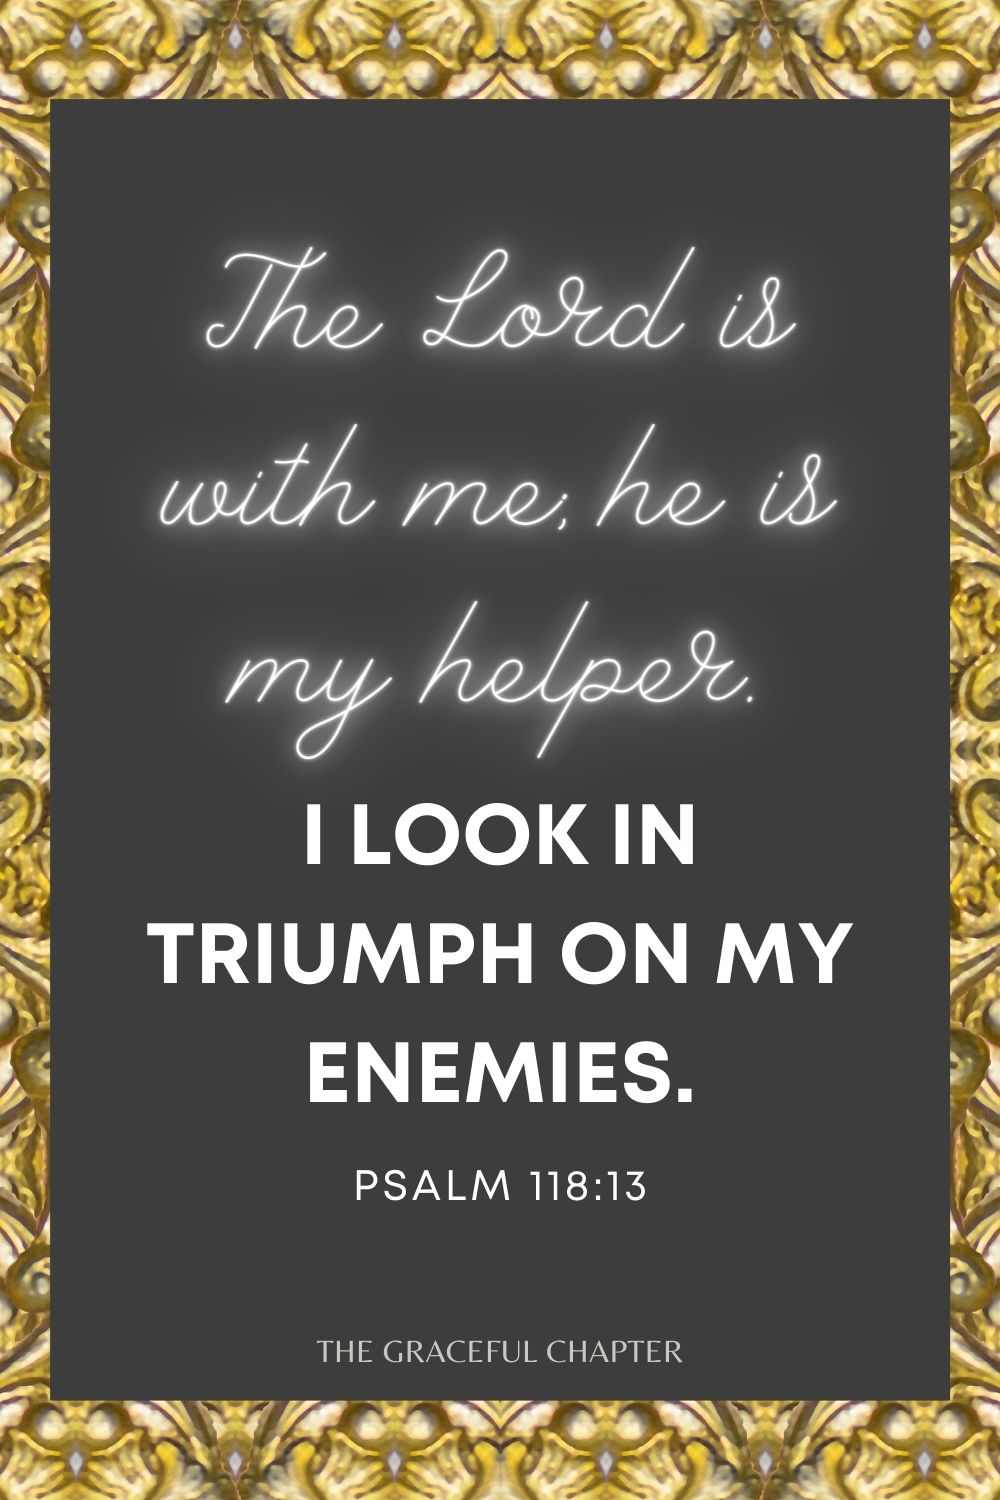 The Lord is with me; he is my helper. I look in triumph on my enemies. Psalm 118:7